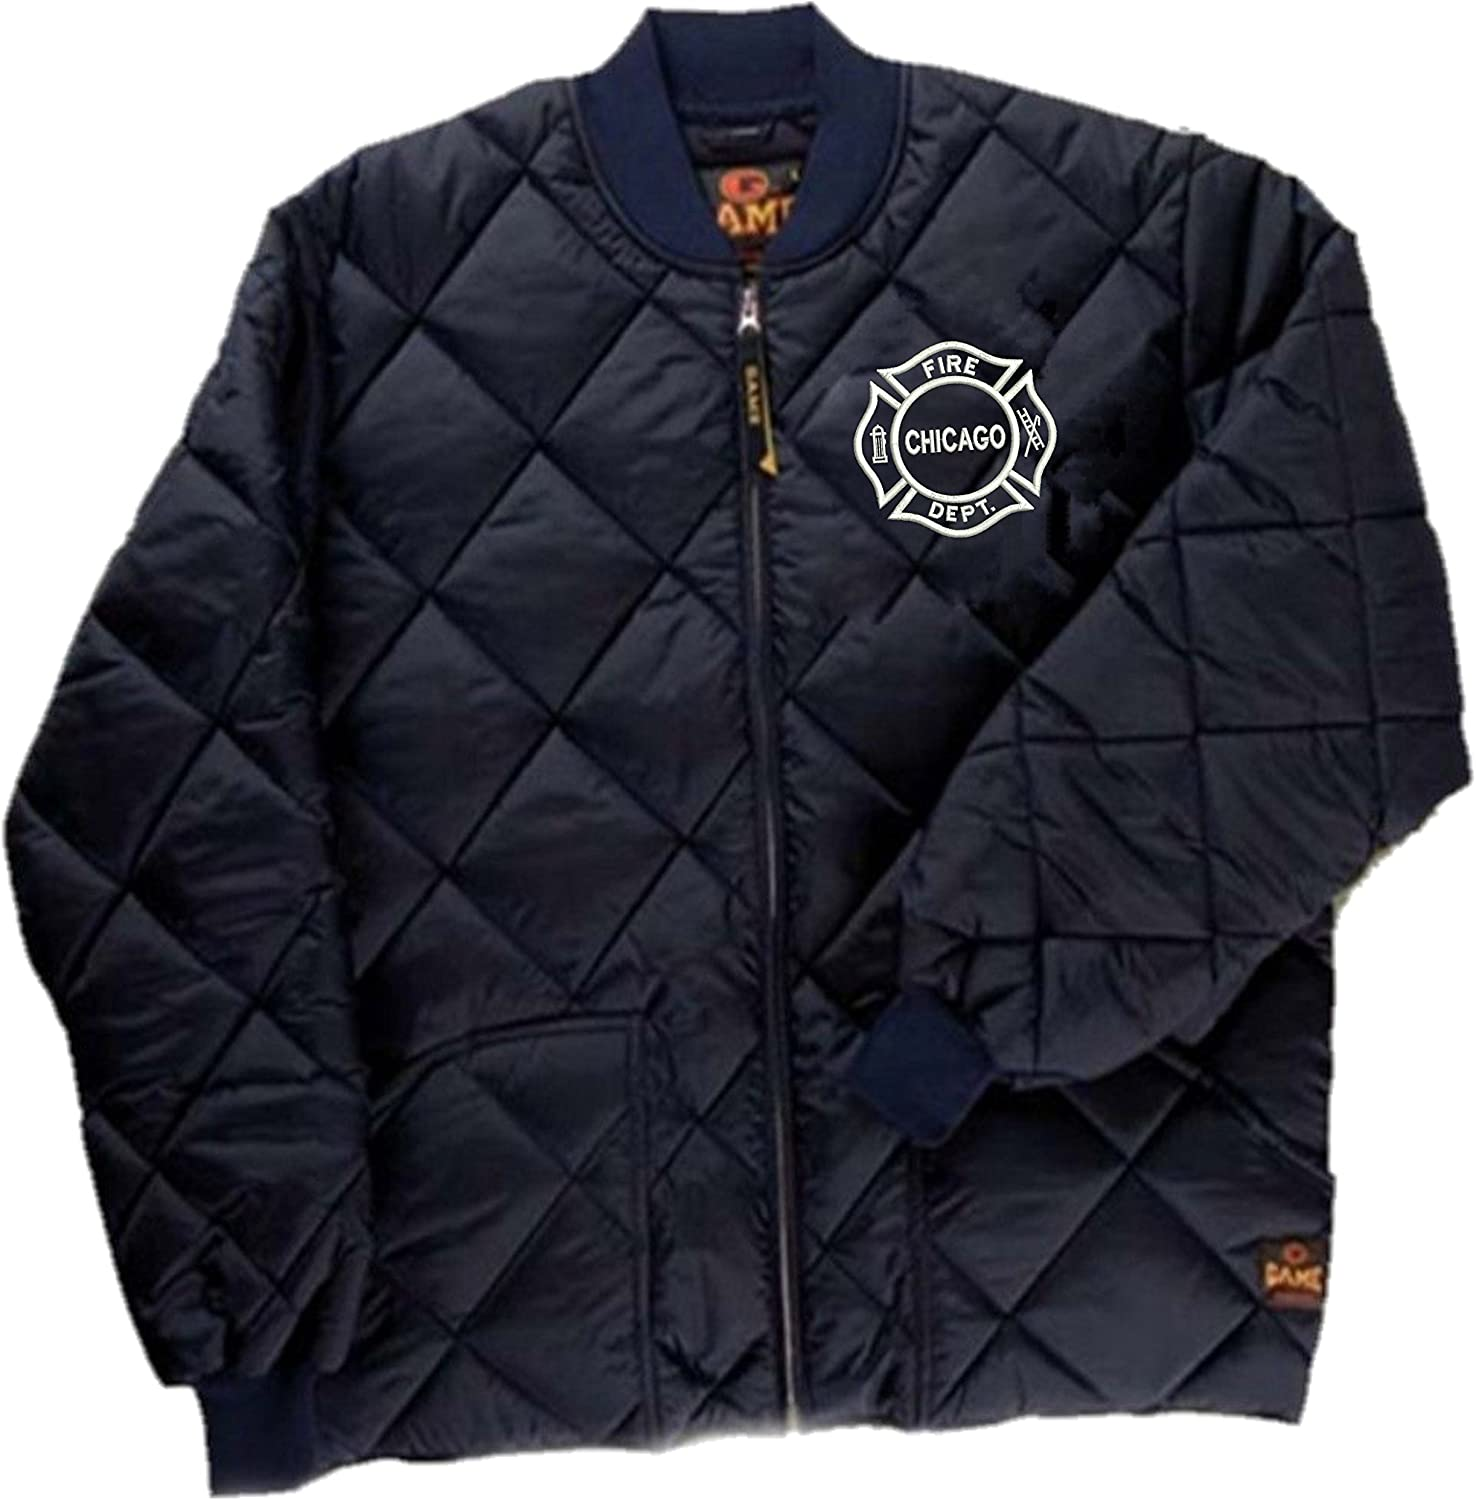 GAME Chicago Fire Department Quilted Jacket W//Embroidered Maltese White Logo As Seen on TV-1221-J